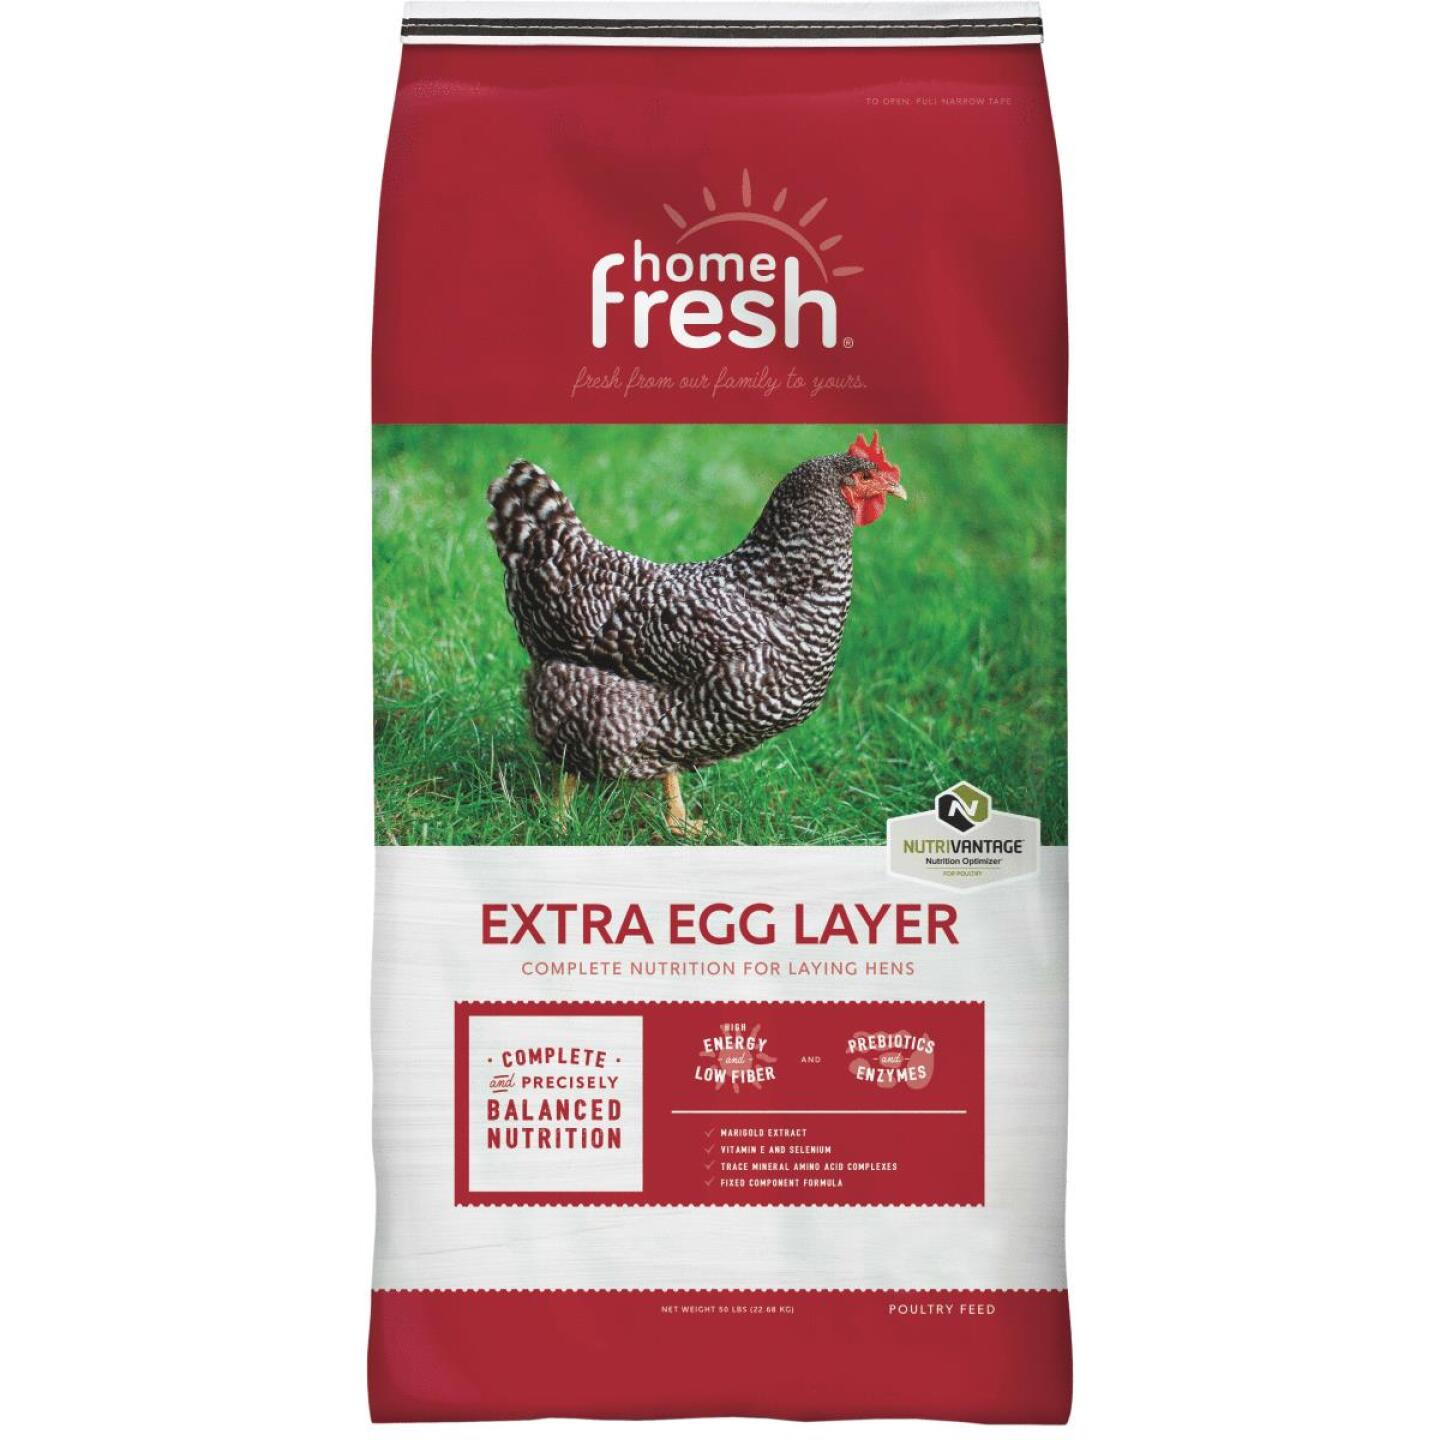 Blue Seal Home Fresh 50 Lb. Laying Chicken Feed Image 1